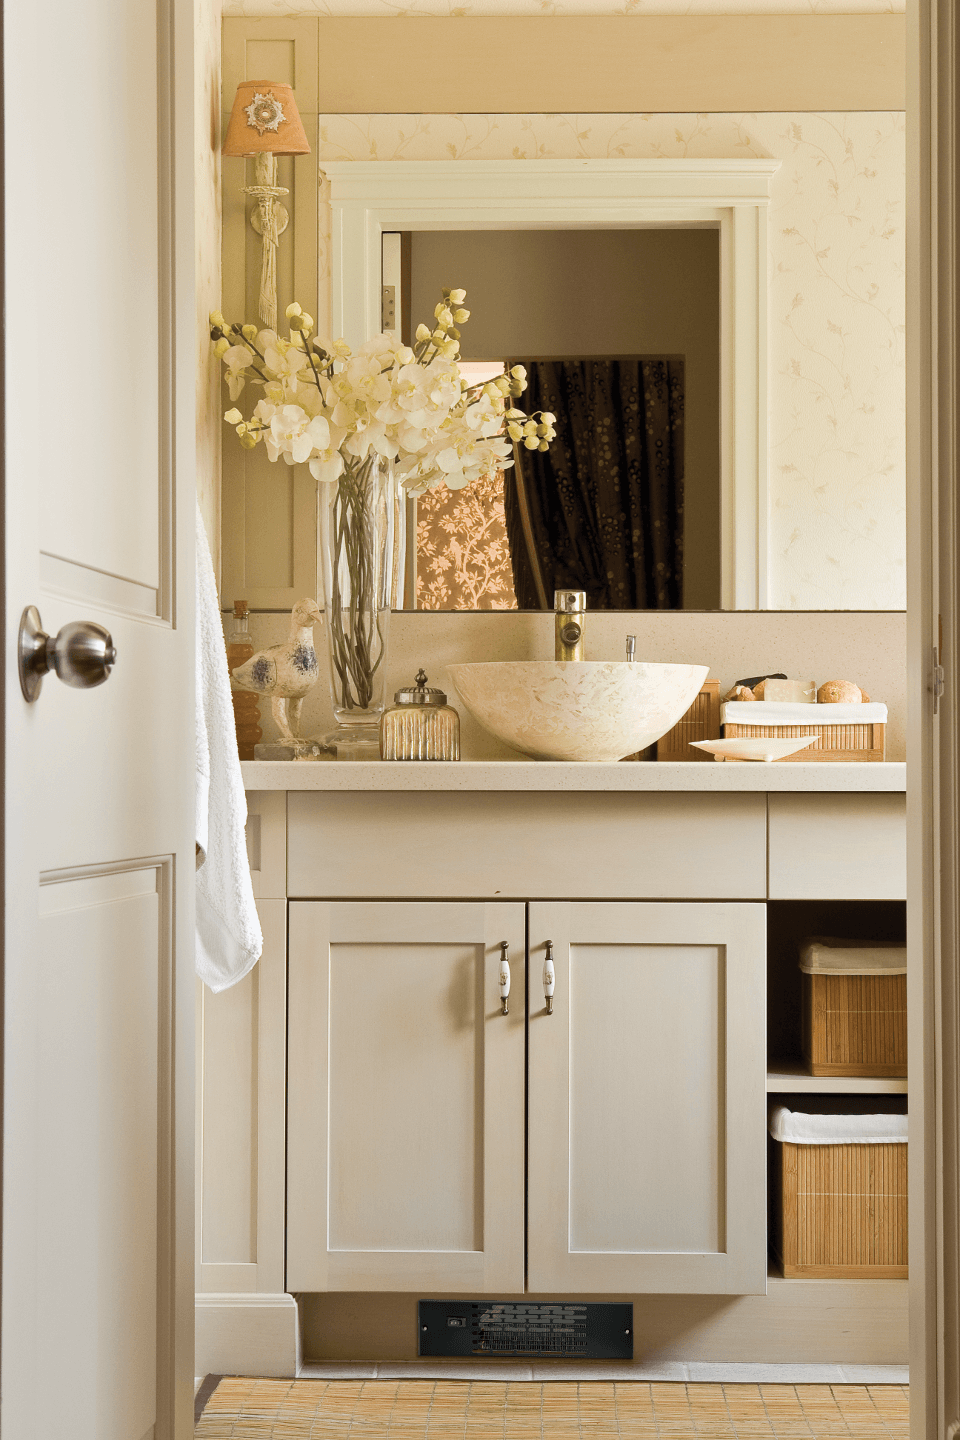 Twin Flo discreetly placed under a bathroom cabinet to keep the space warm